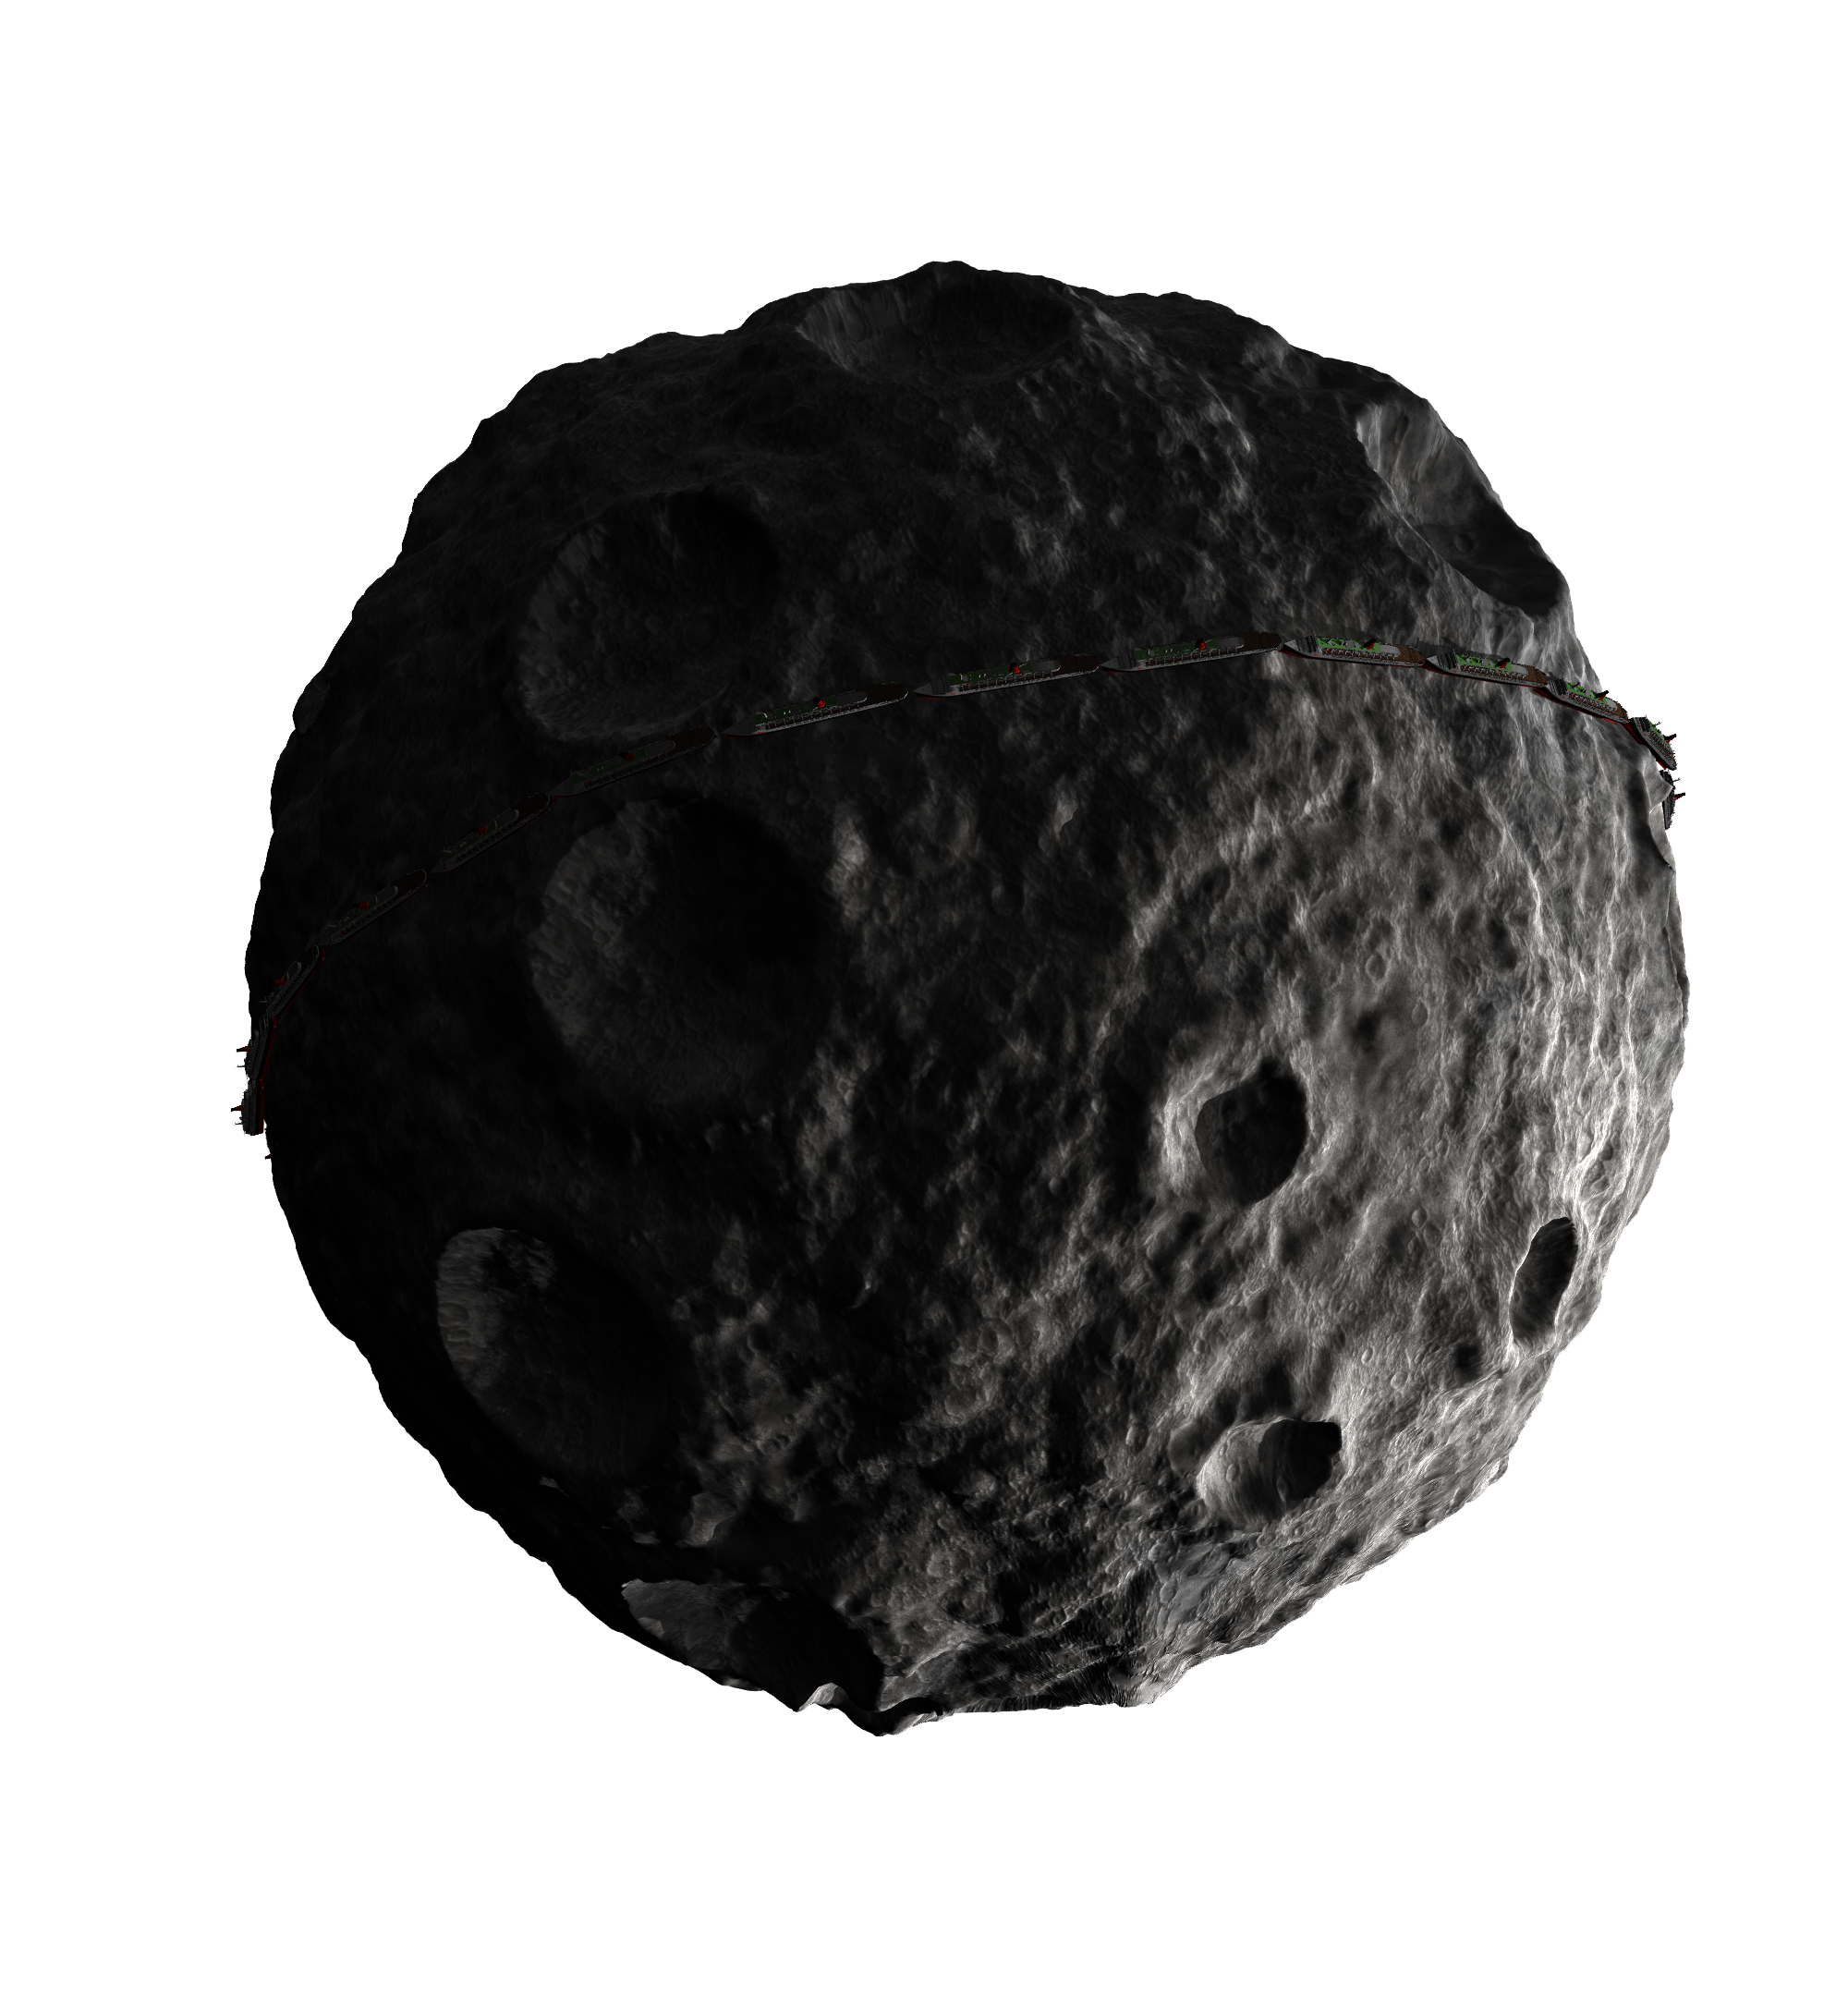 Meteor cartoon png. Asteroid images transparent free